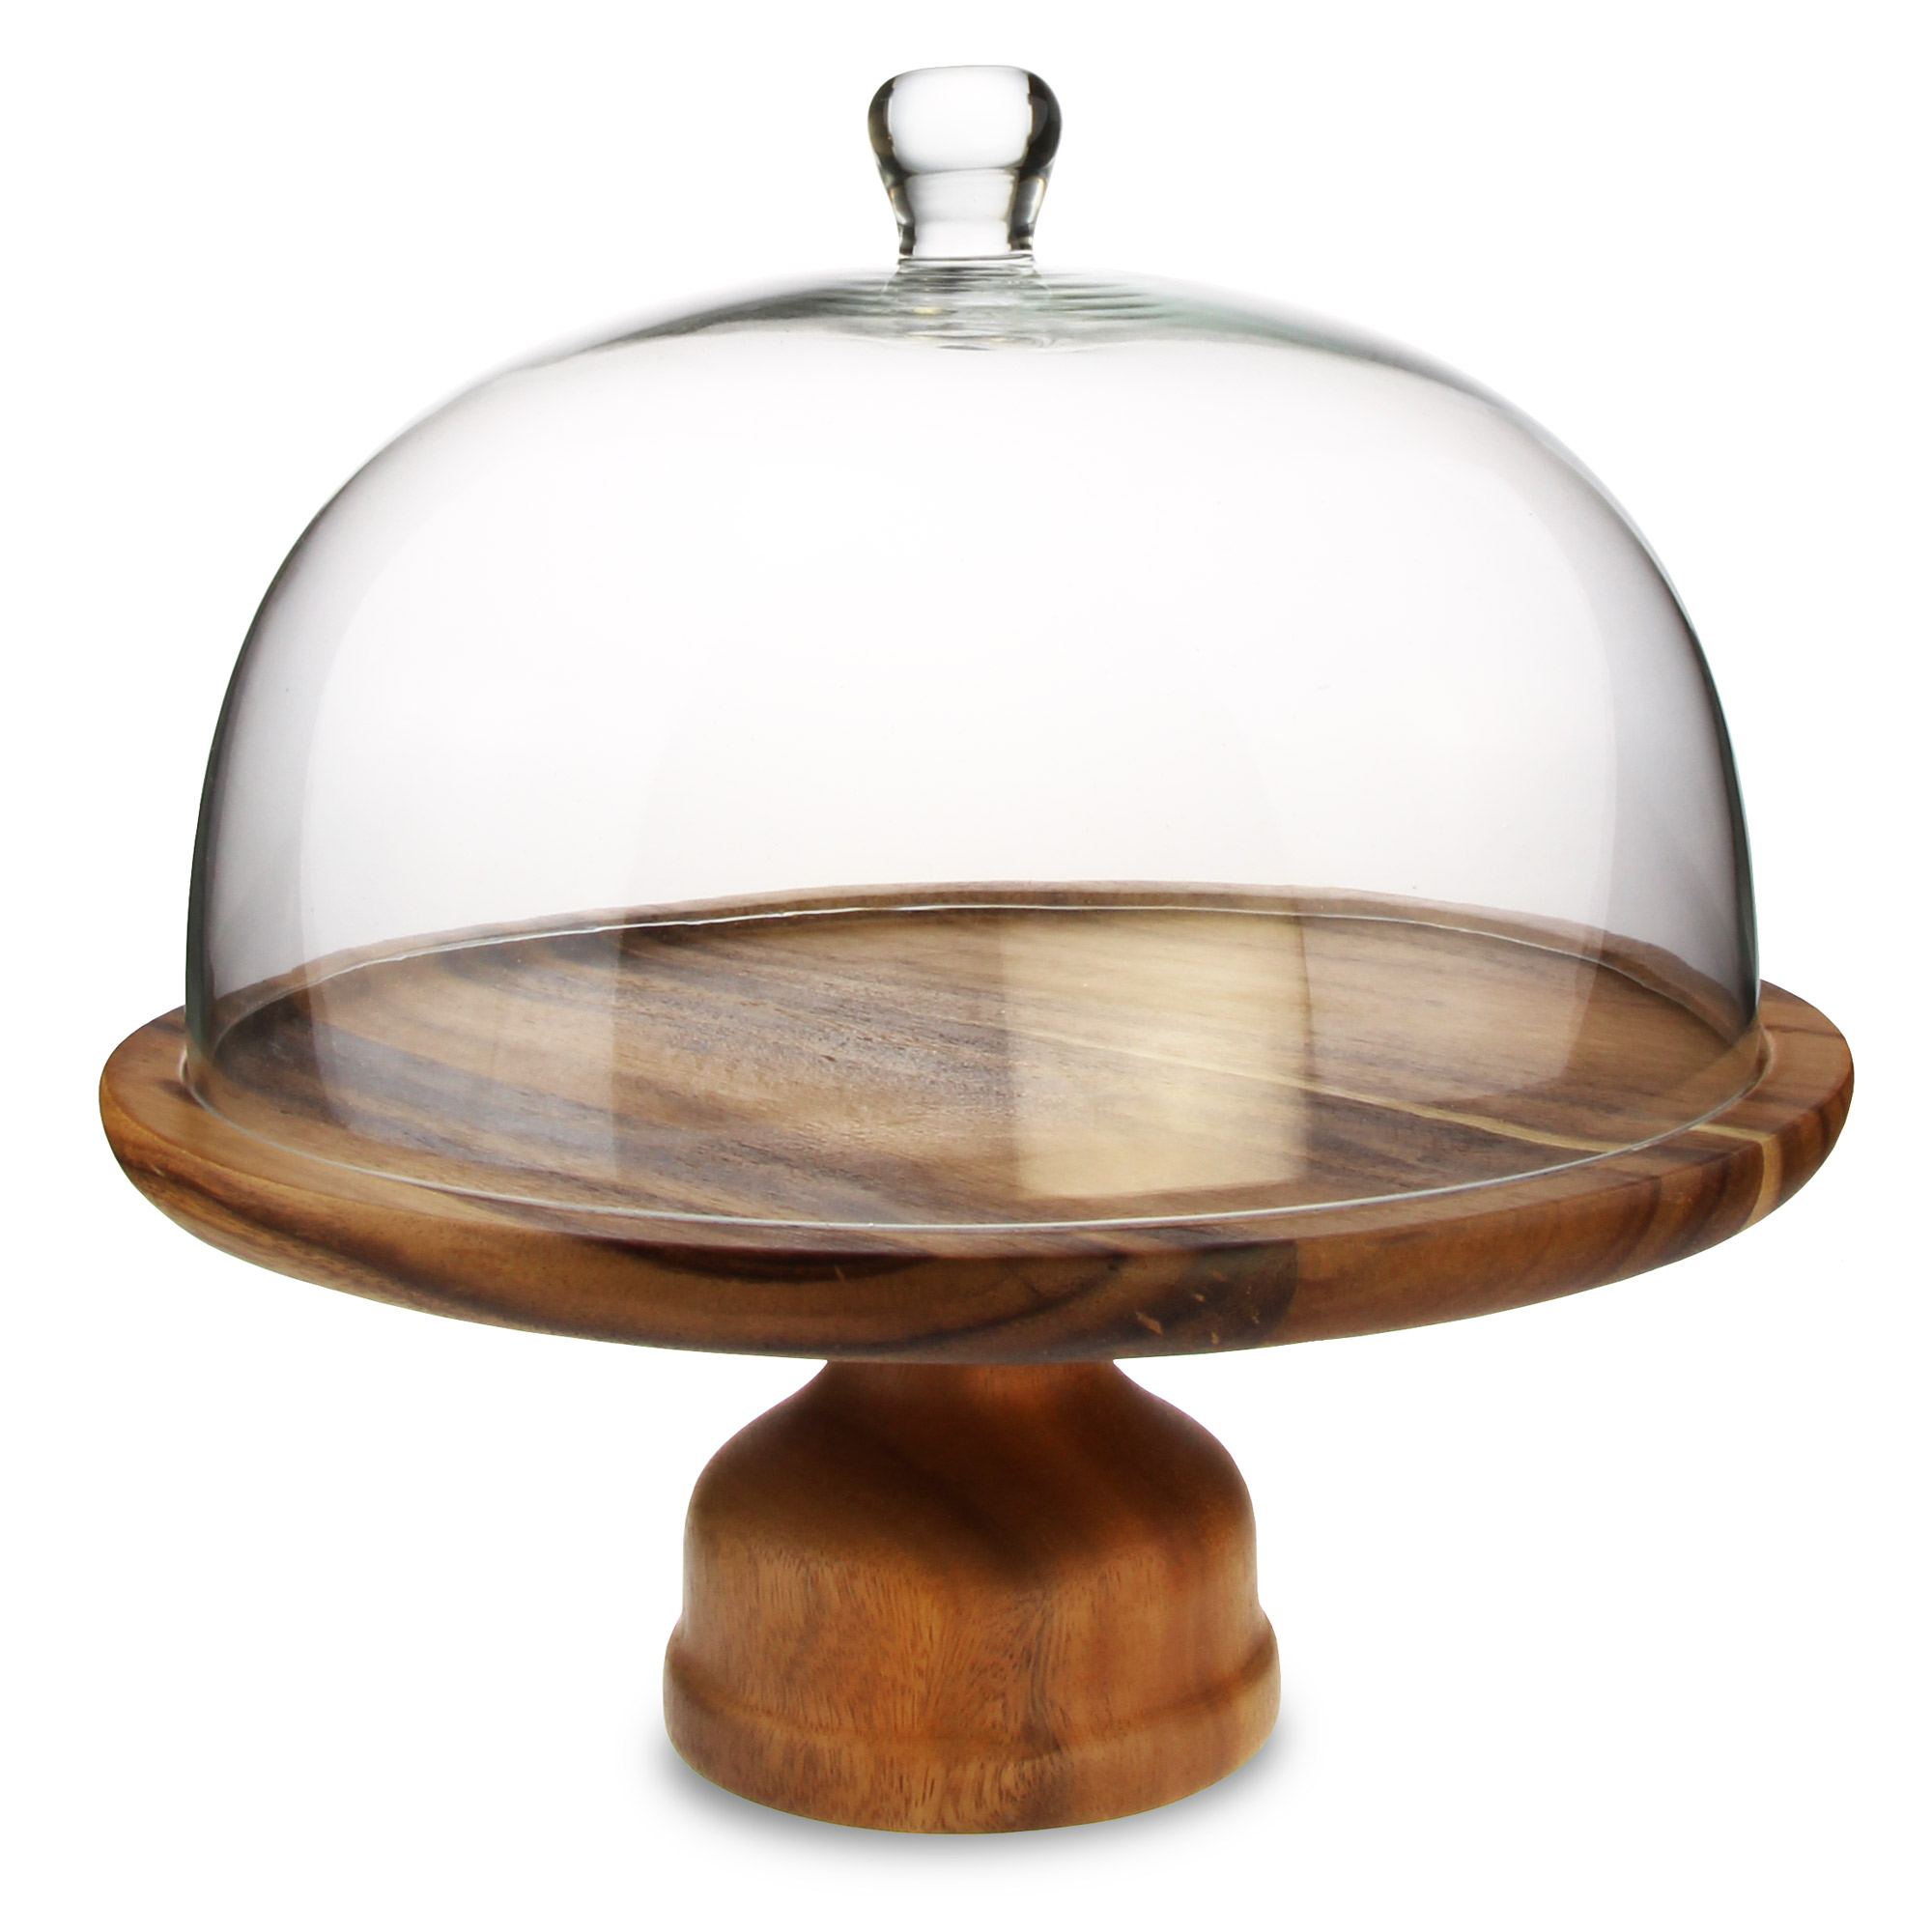 Cake Stands Wholesale Melbourne